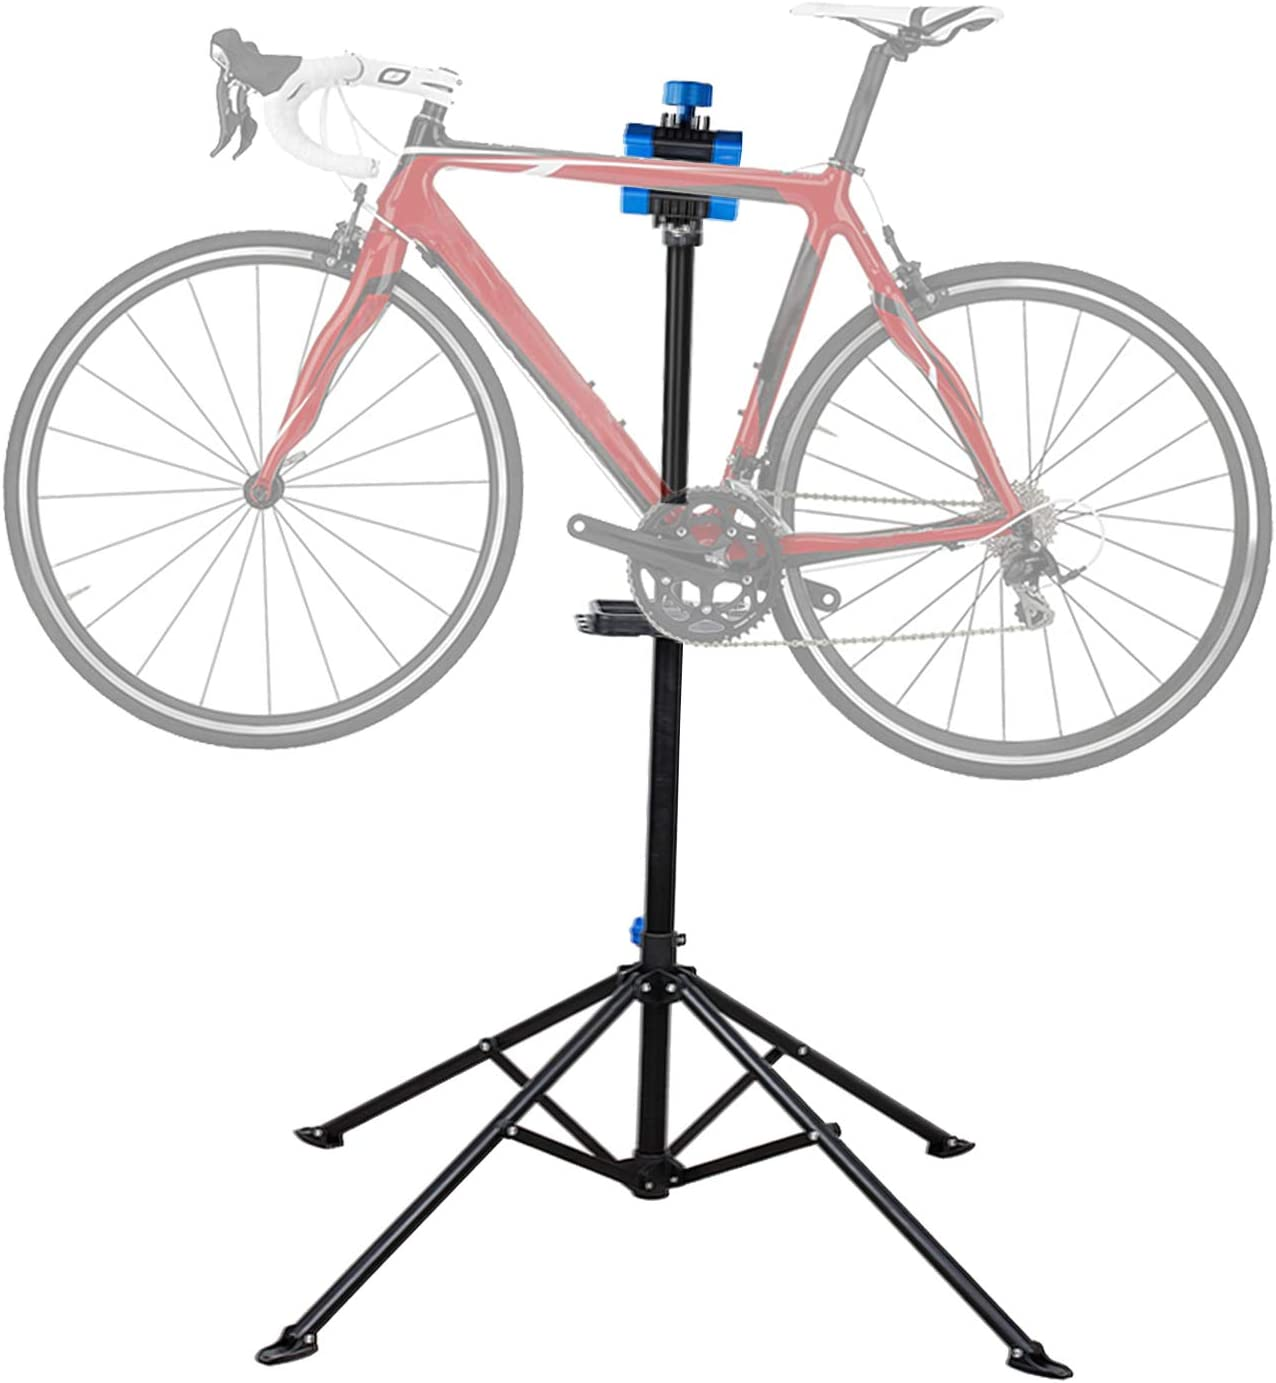 Topeak Two Up Tune Up Bike Stand Storage /& Repair w// Accessories /& Folding Base